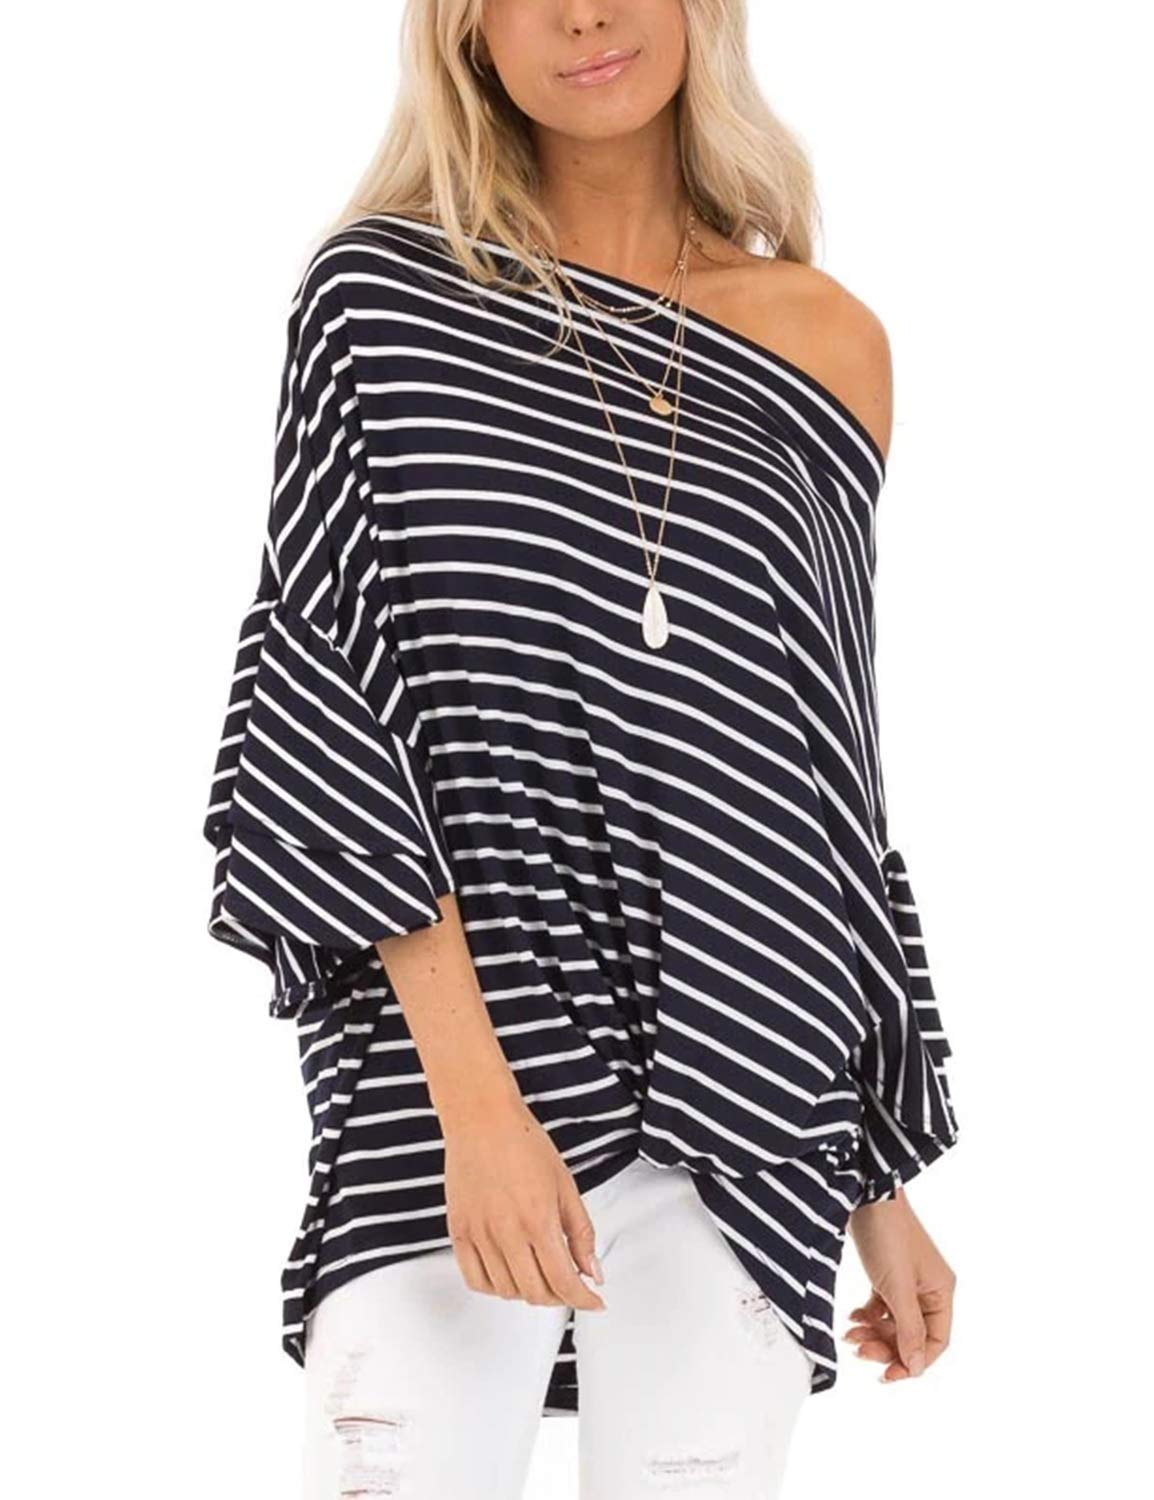 BMJL Women's One Shoulder Top Striped Print Shirt Flare Sleeve Knot Hem